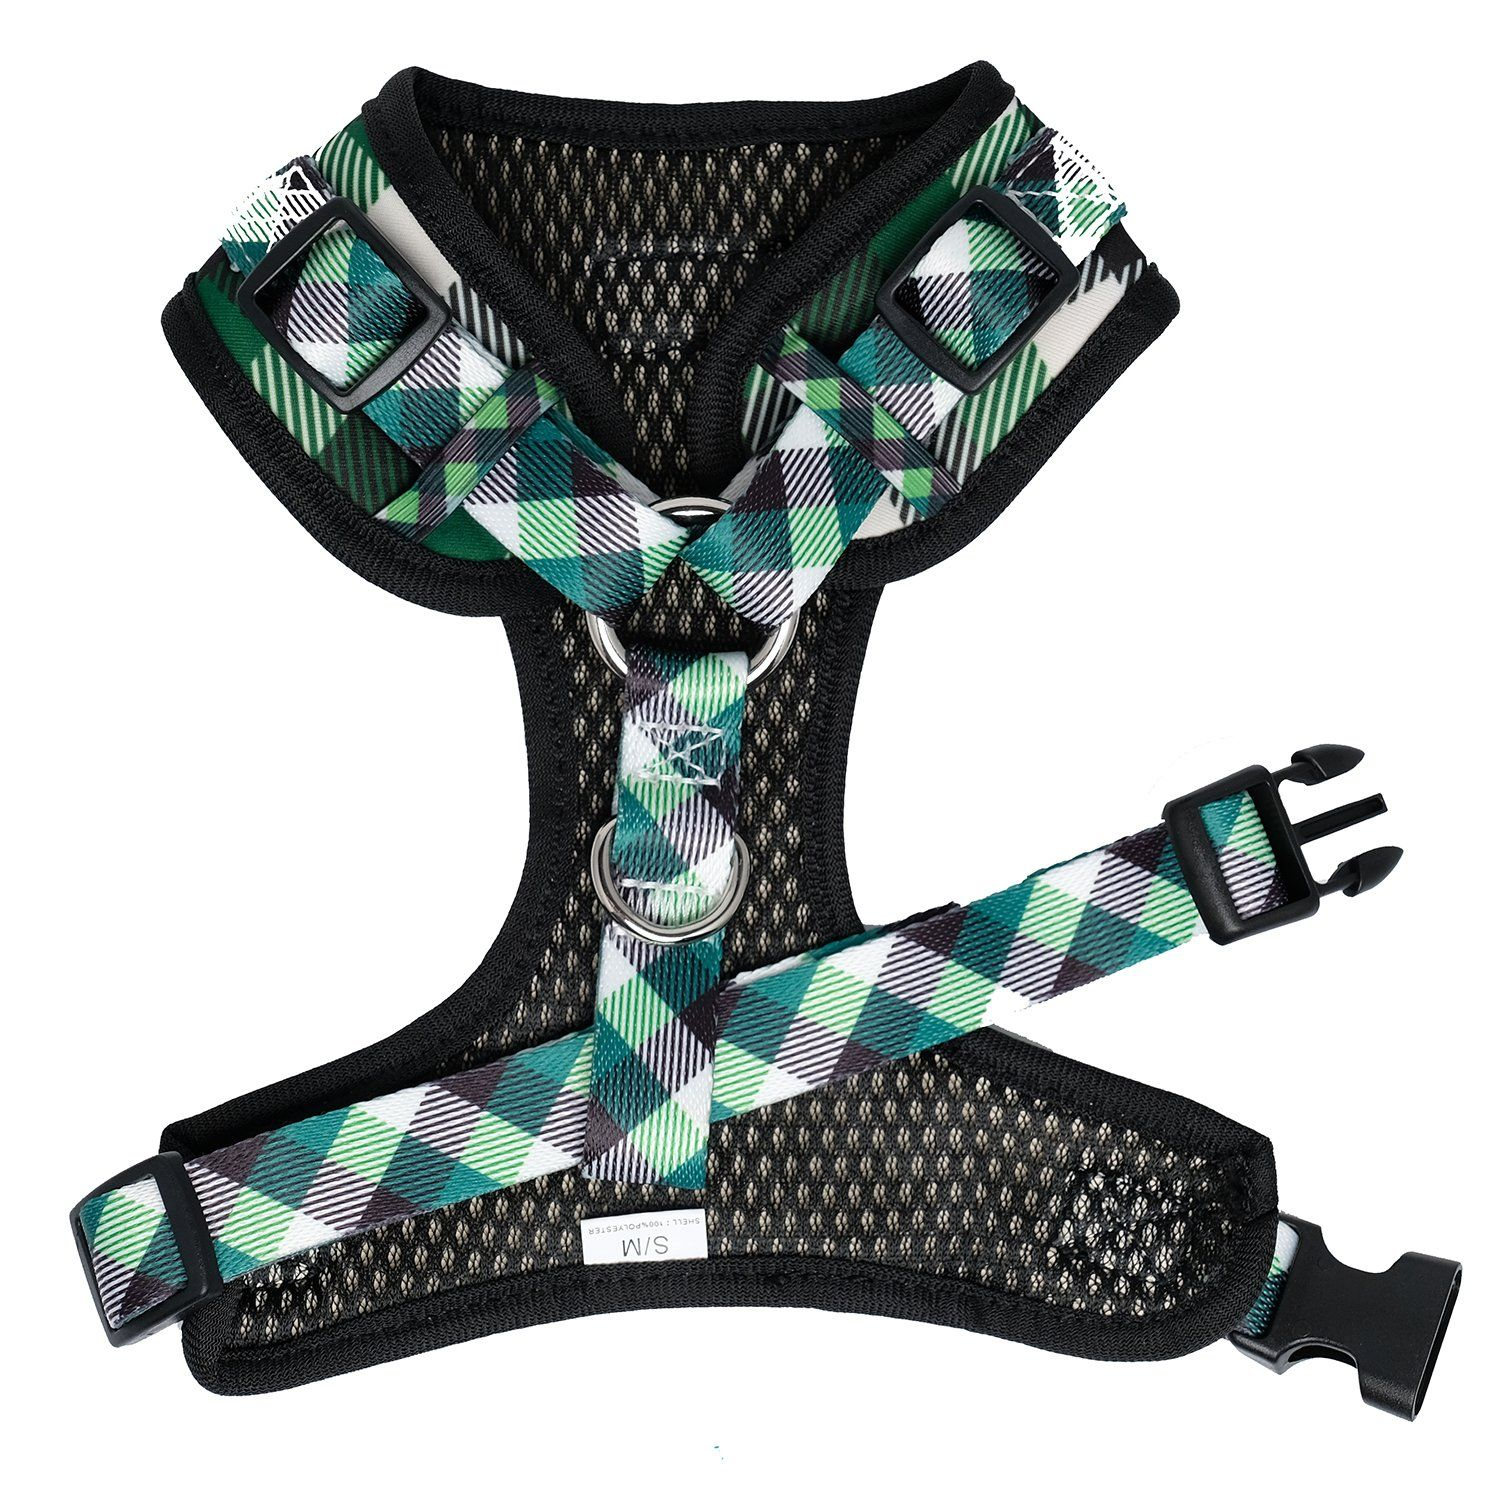 plaid dog harness, adjustable dog harness, neck adjustable dog harness